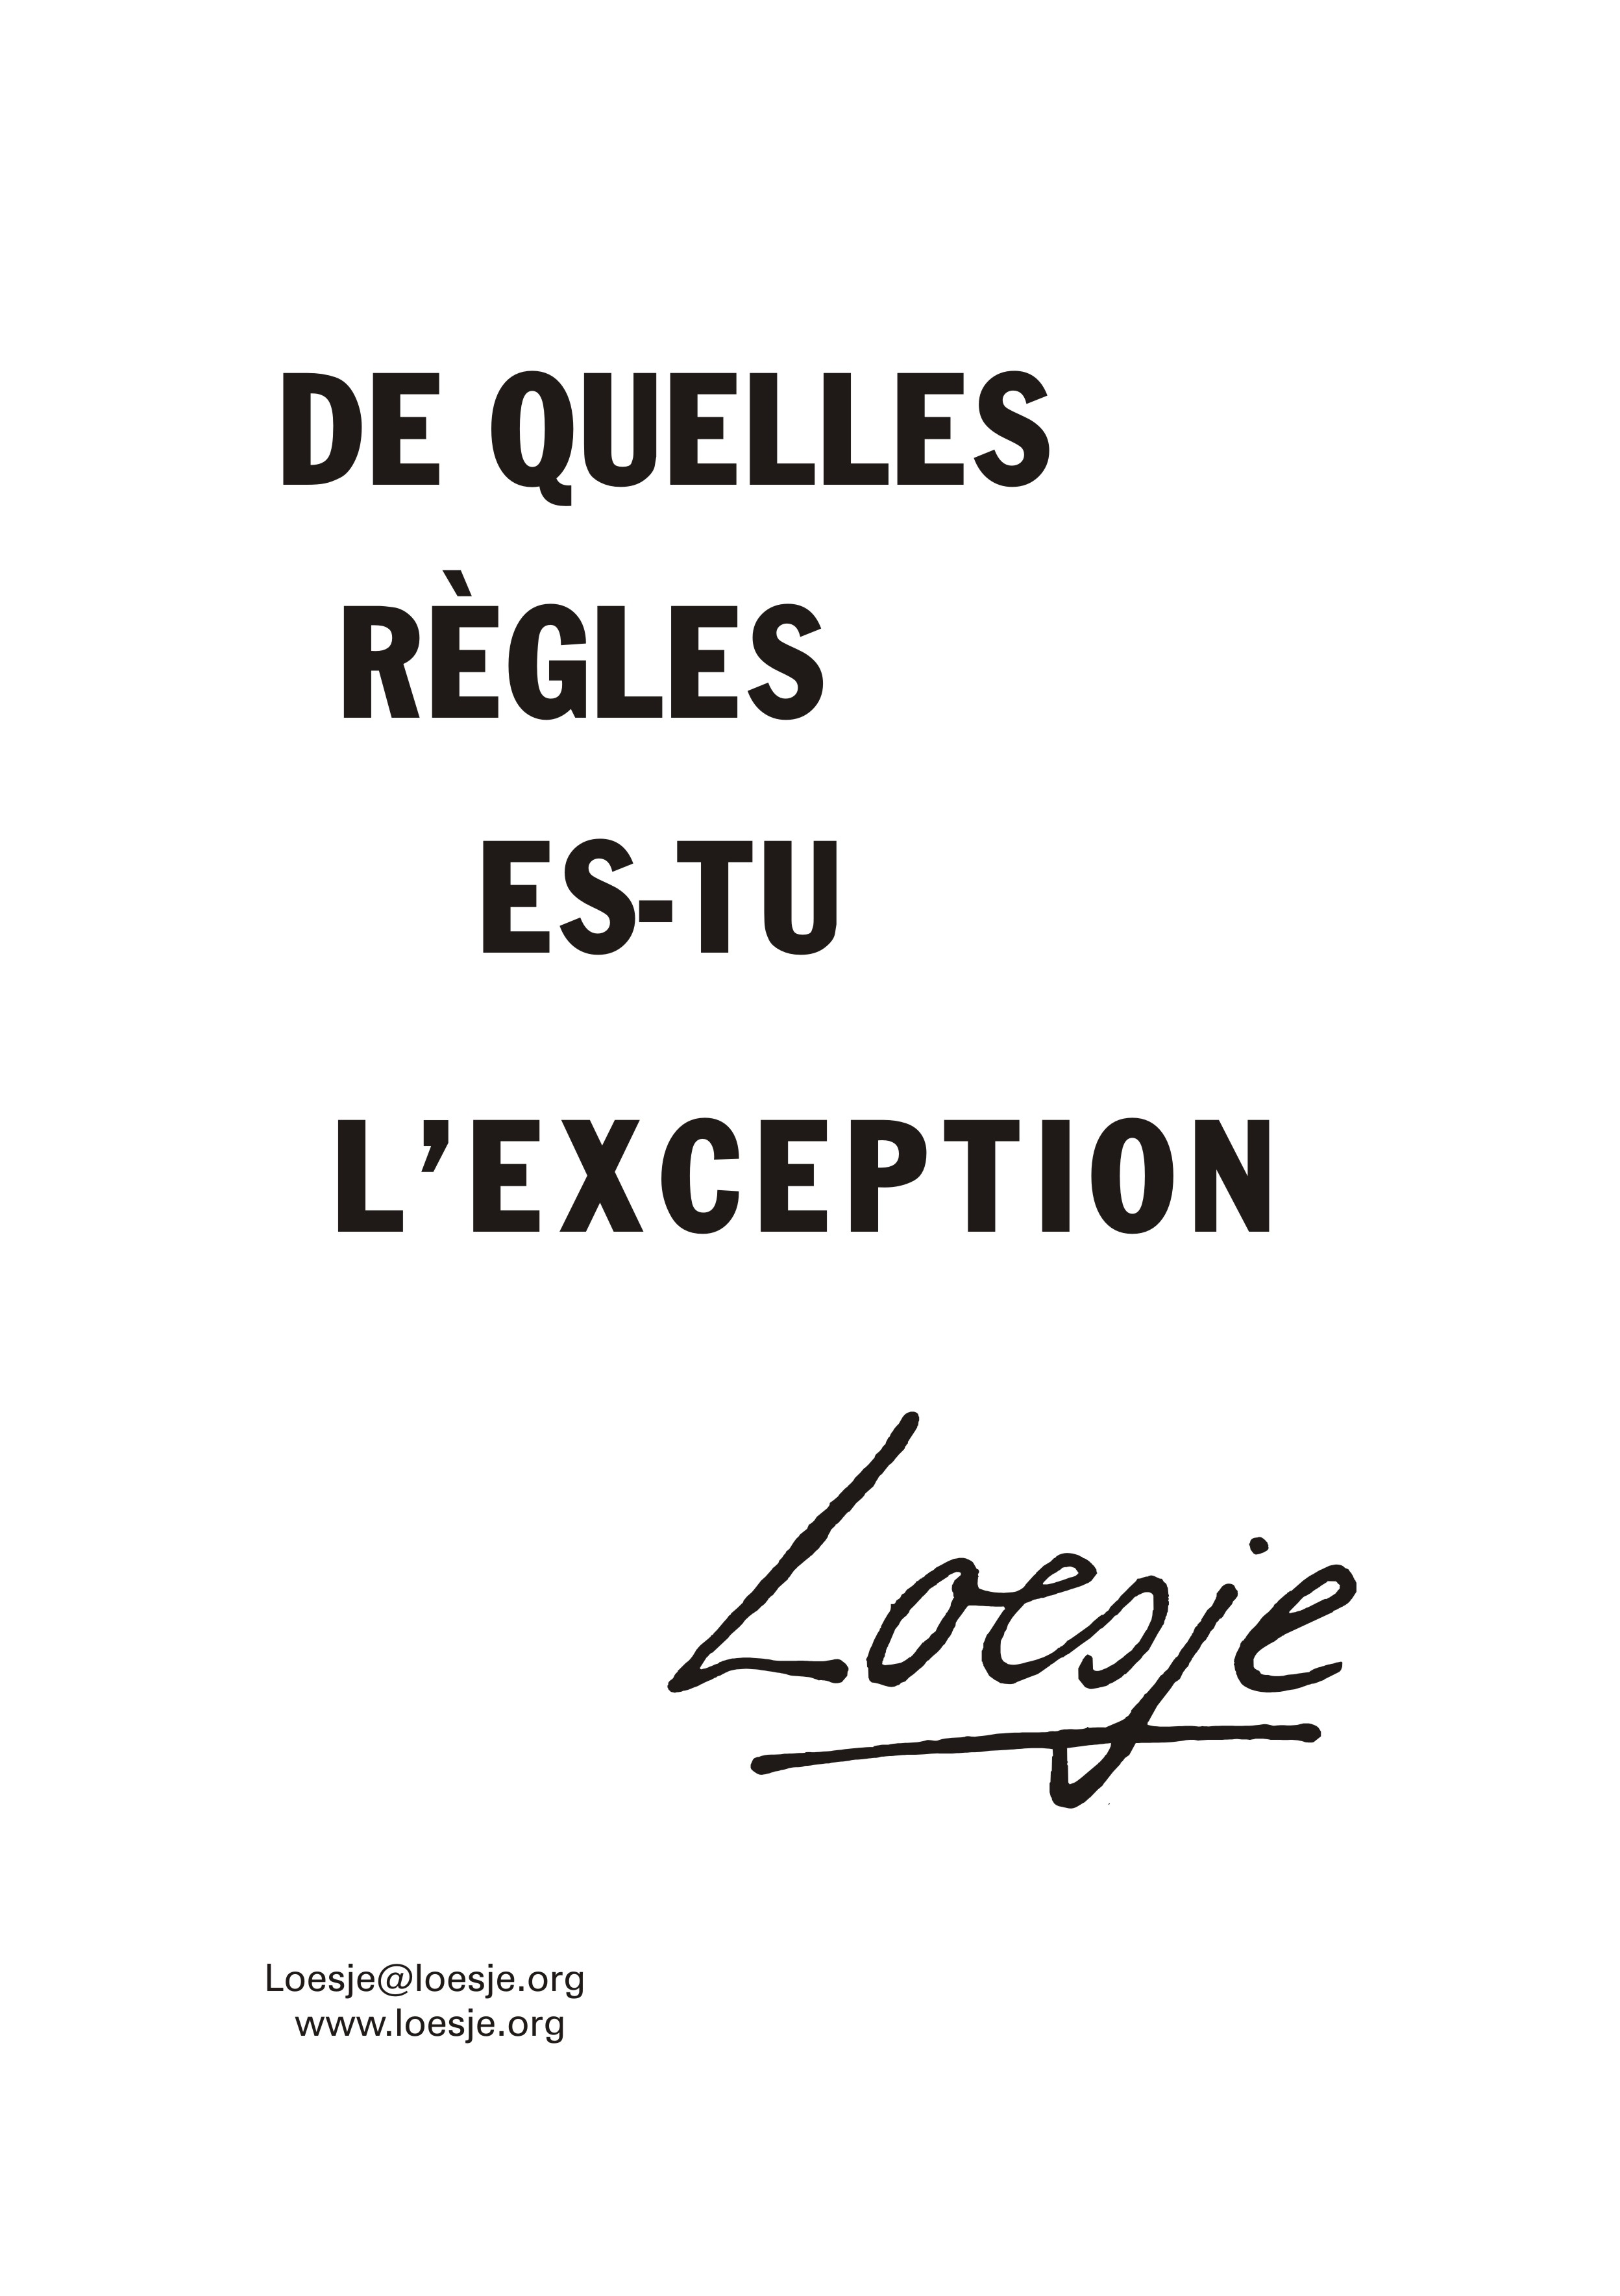 De Quelle règle es tu l'exception